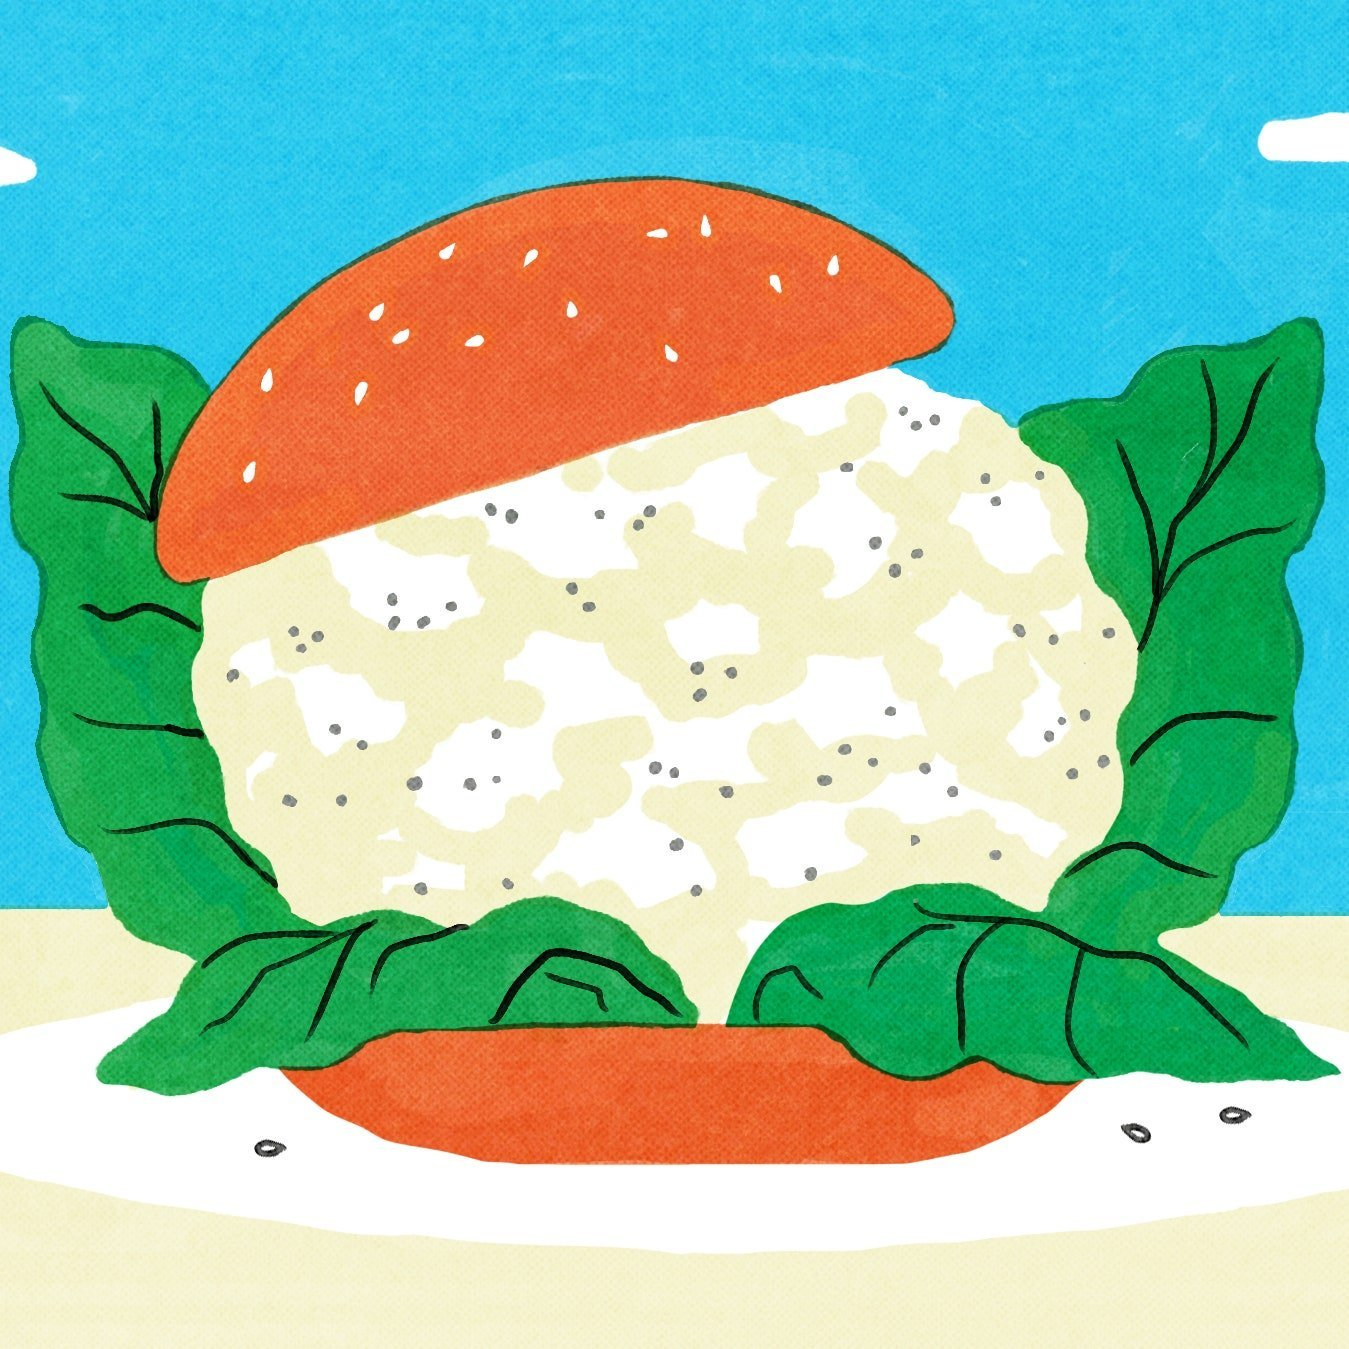 After Beef: The Planet on the Plate